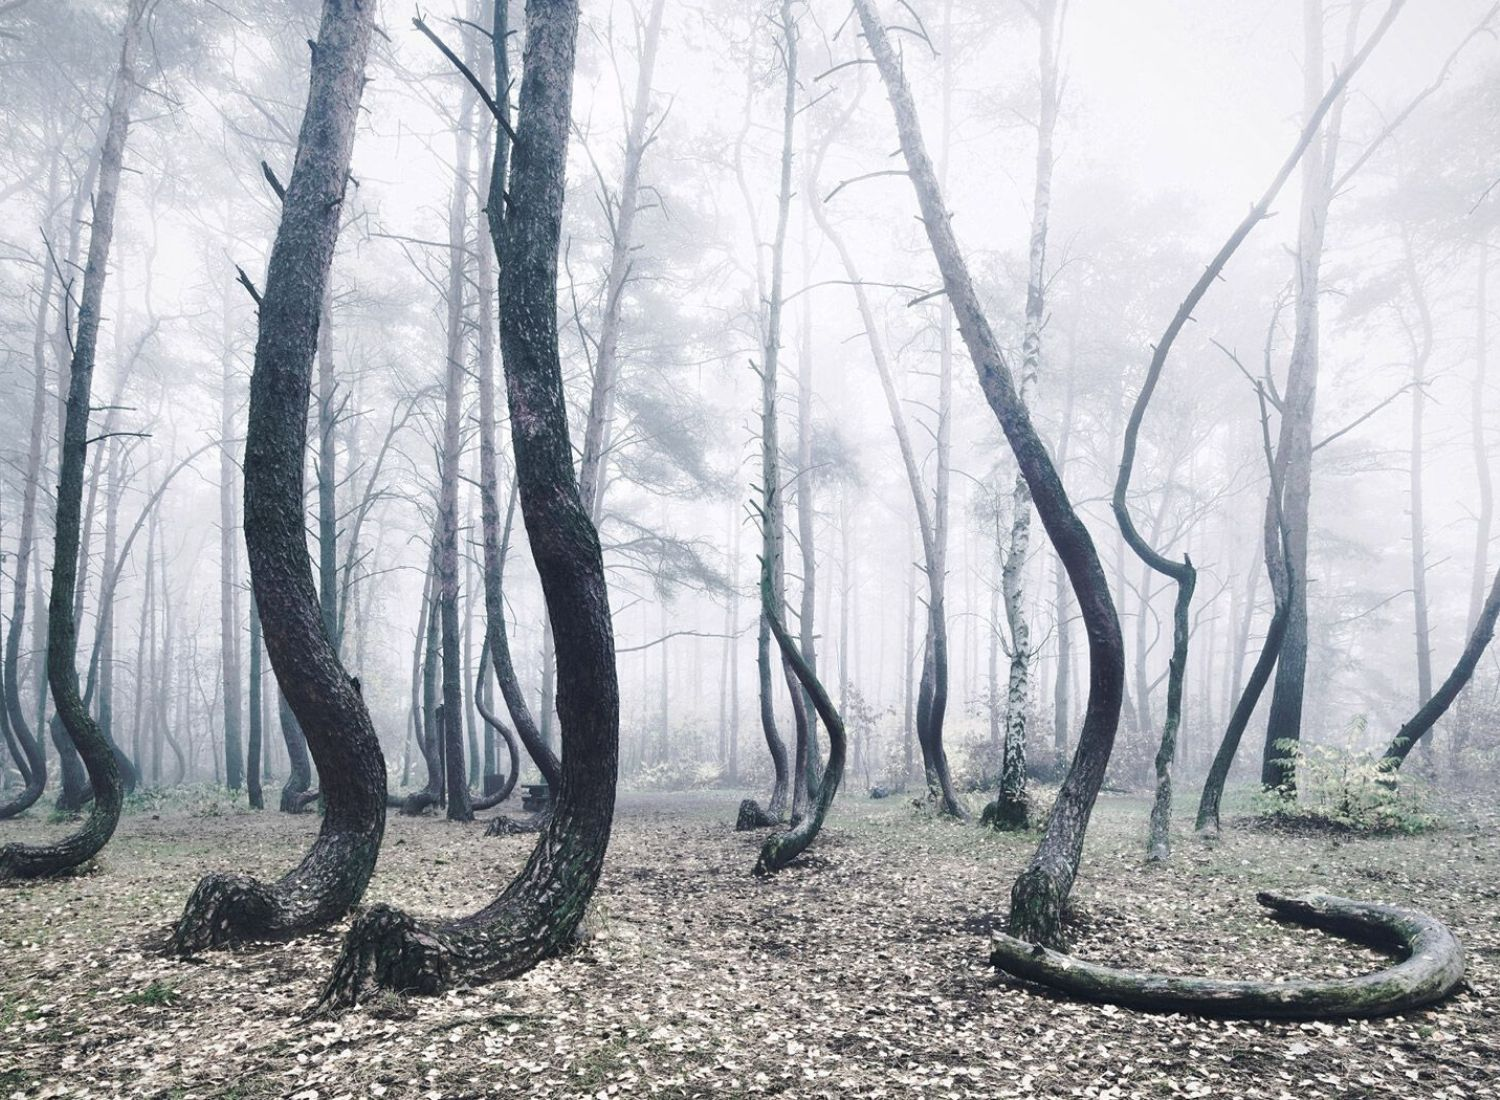 The Mystery Behind The Crooked Forest - 4 Proposed Explanations